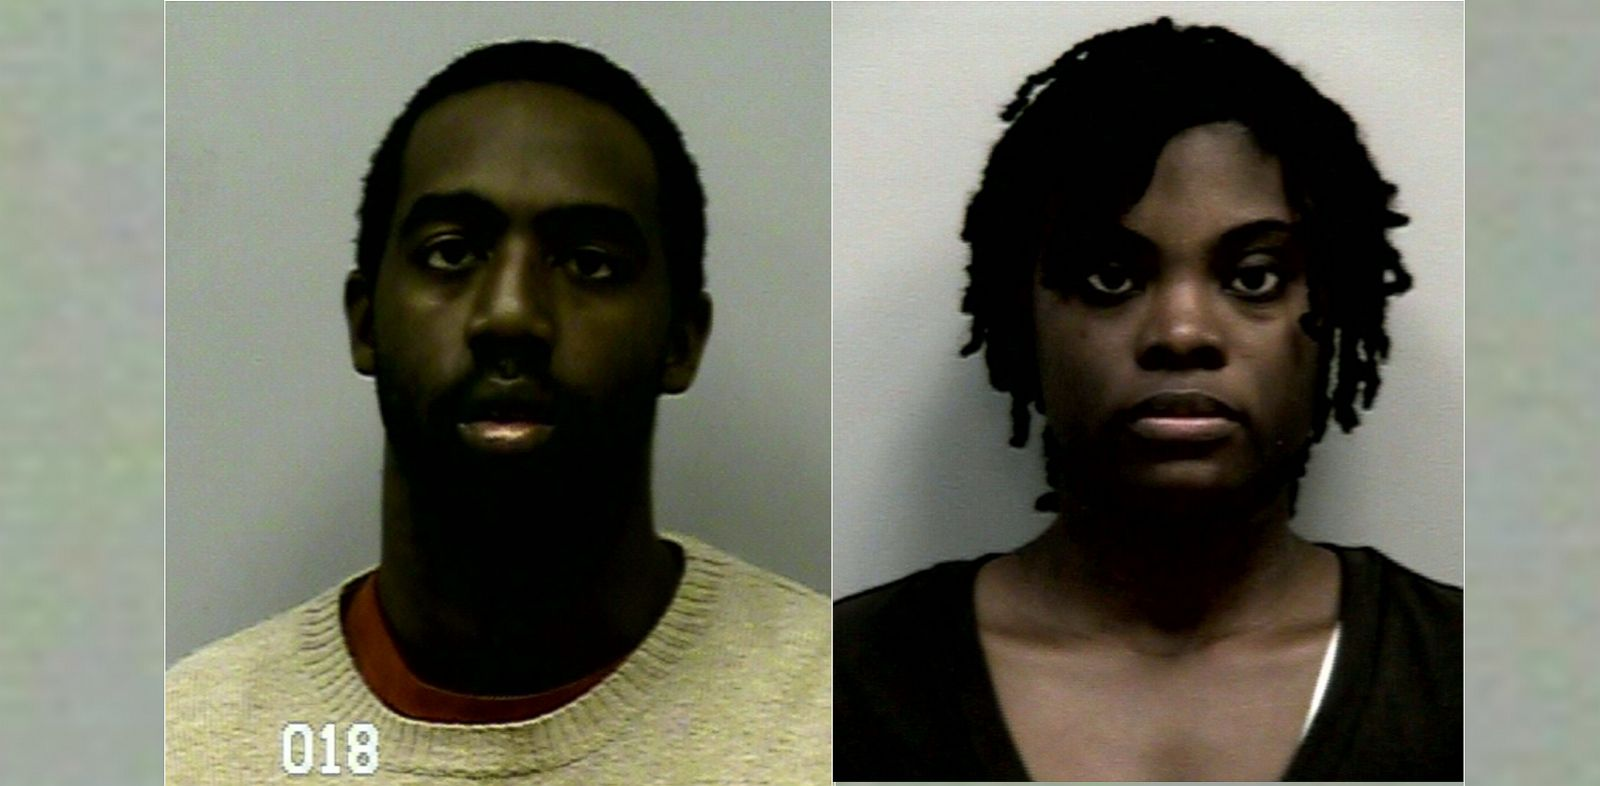 PHOTO: Eman Moss and Tiffany Moss have been arrested and charged in the murder of their daughter, whose body was found in a trash can.